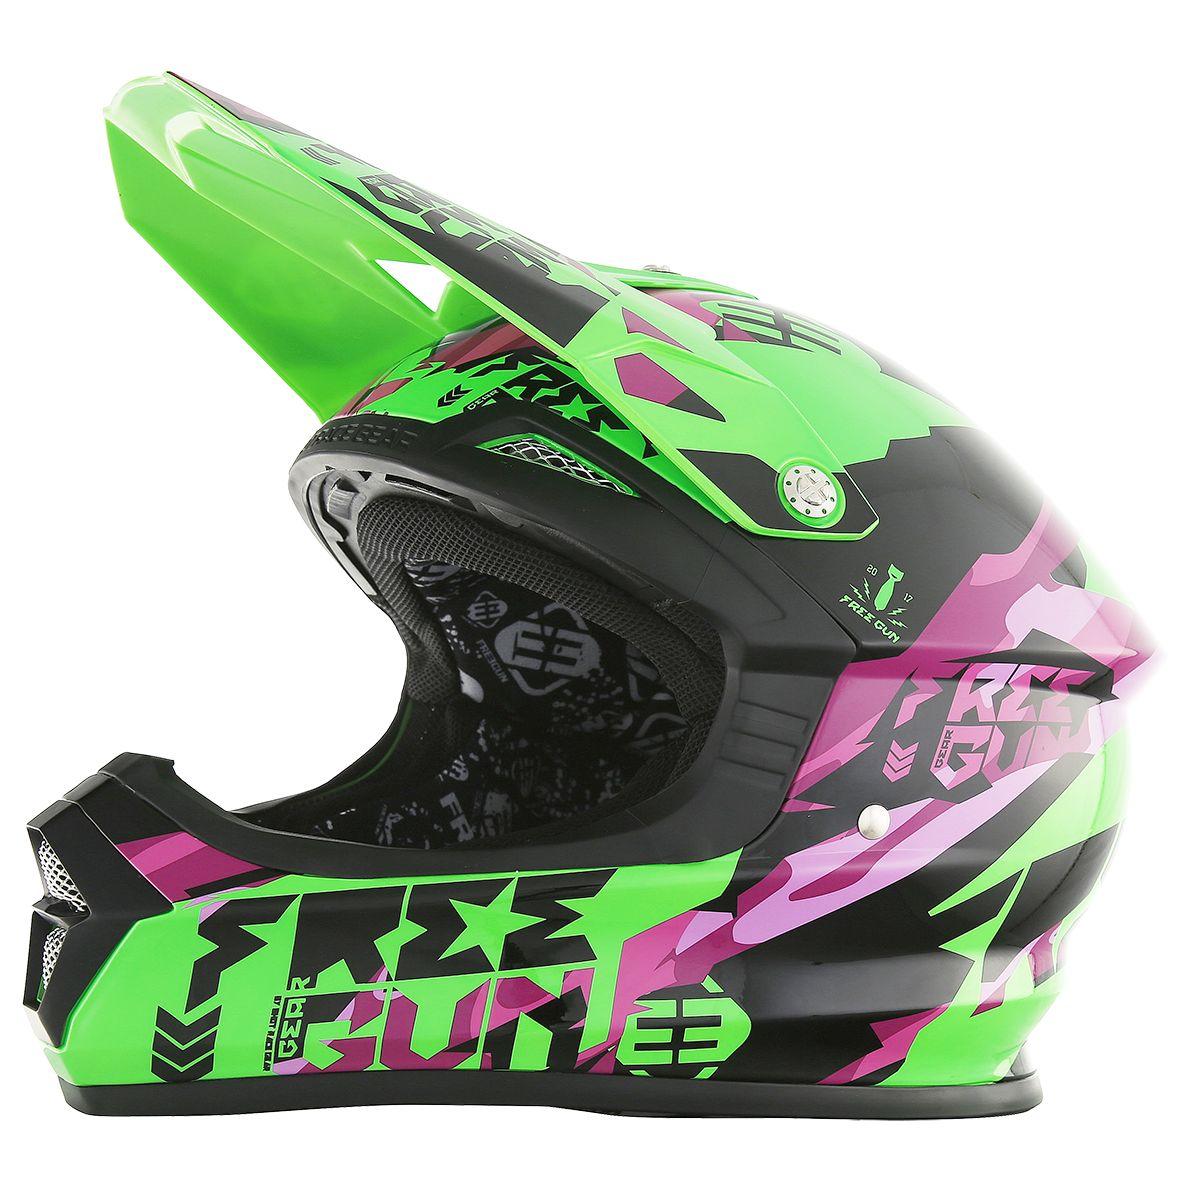 Casque cross Shot destockage XP4 HONOR NEON VERT VIOLET  2017